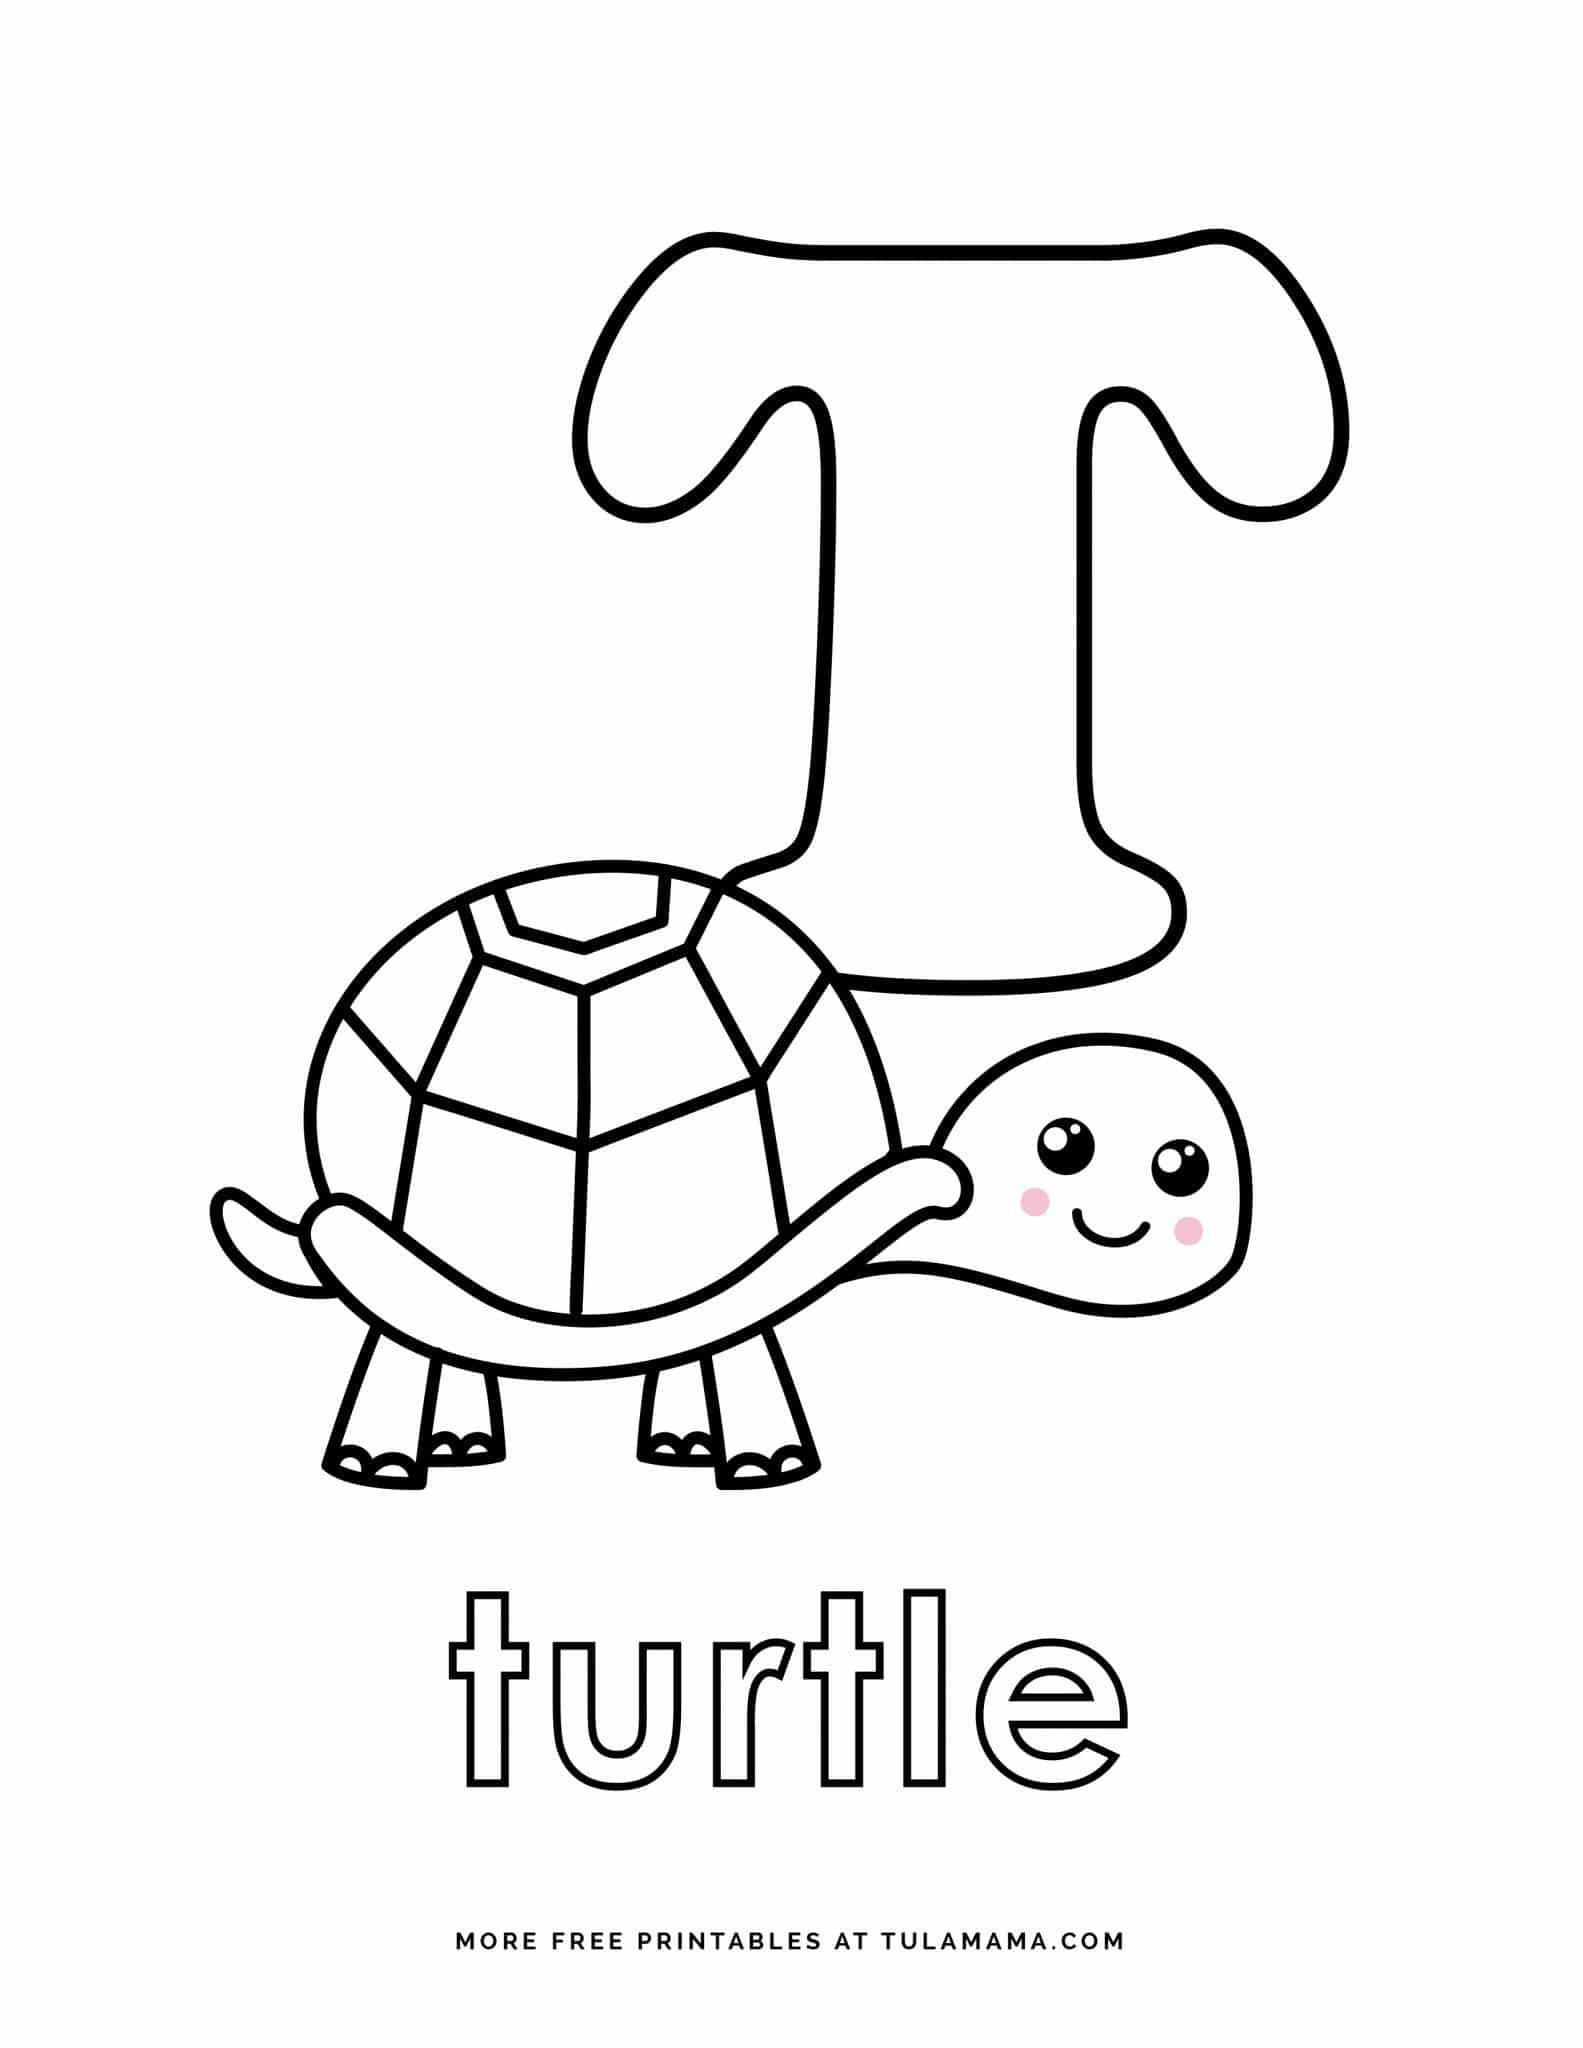 Fun And Easy To Print Abc Coloring Pages For Preschoolers Kindergartners In 2021 Abc Coloring Abc Coloring Pages Alphabet Coloring Pages [ 2048 x 1583 Pixel ]